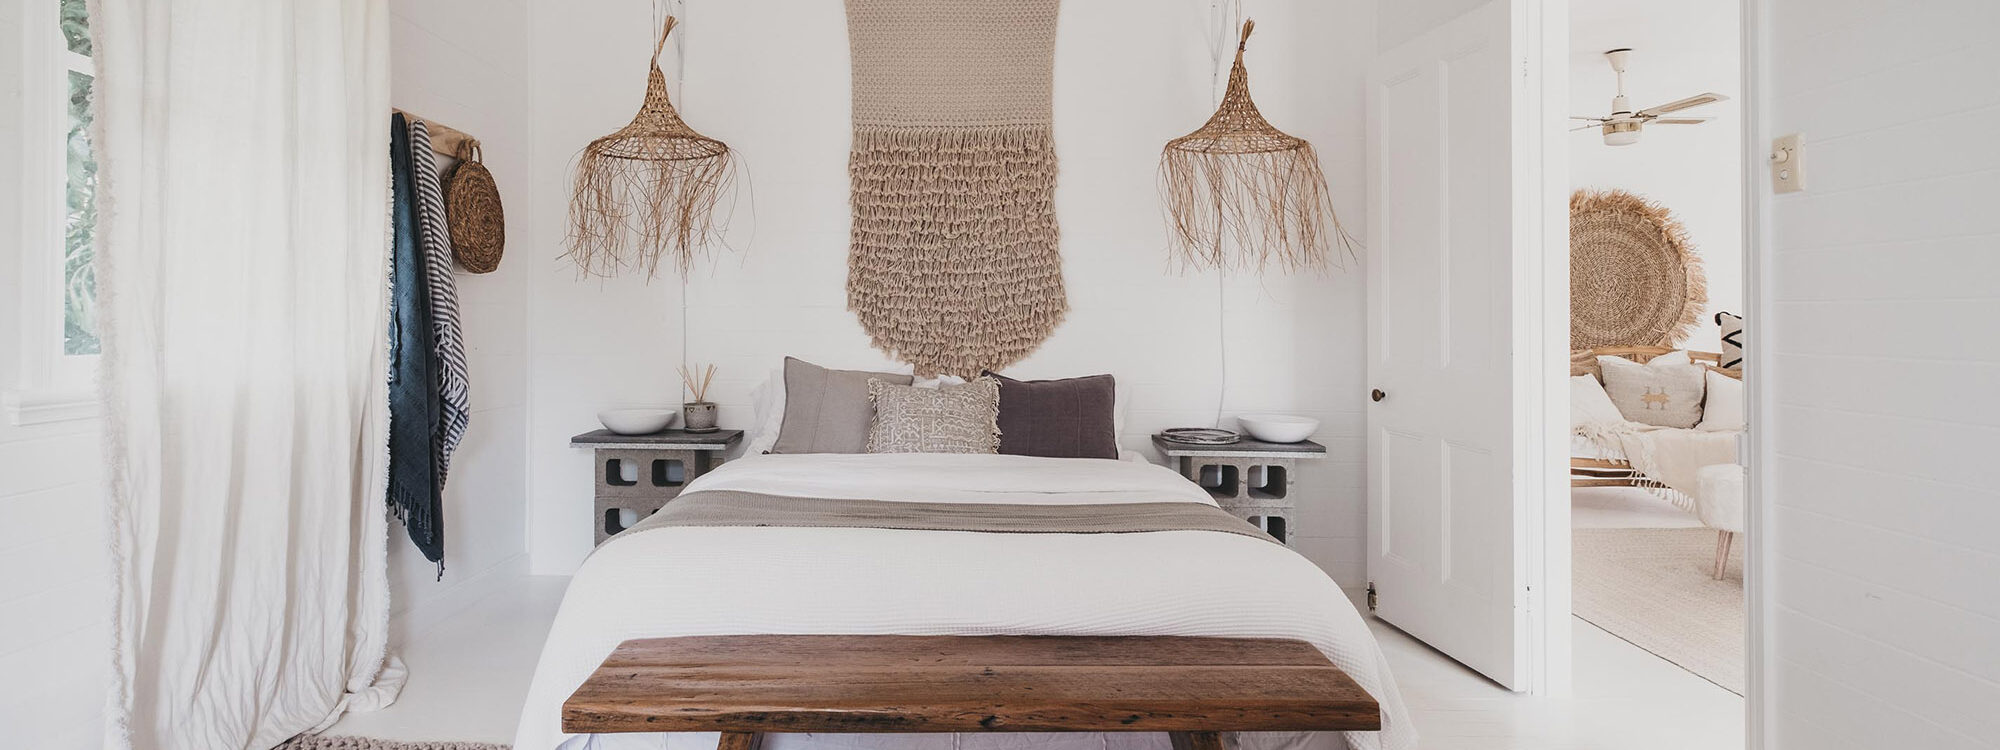 Byron Bay - Collective Retreat - Master Bedroom a